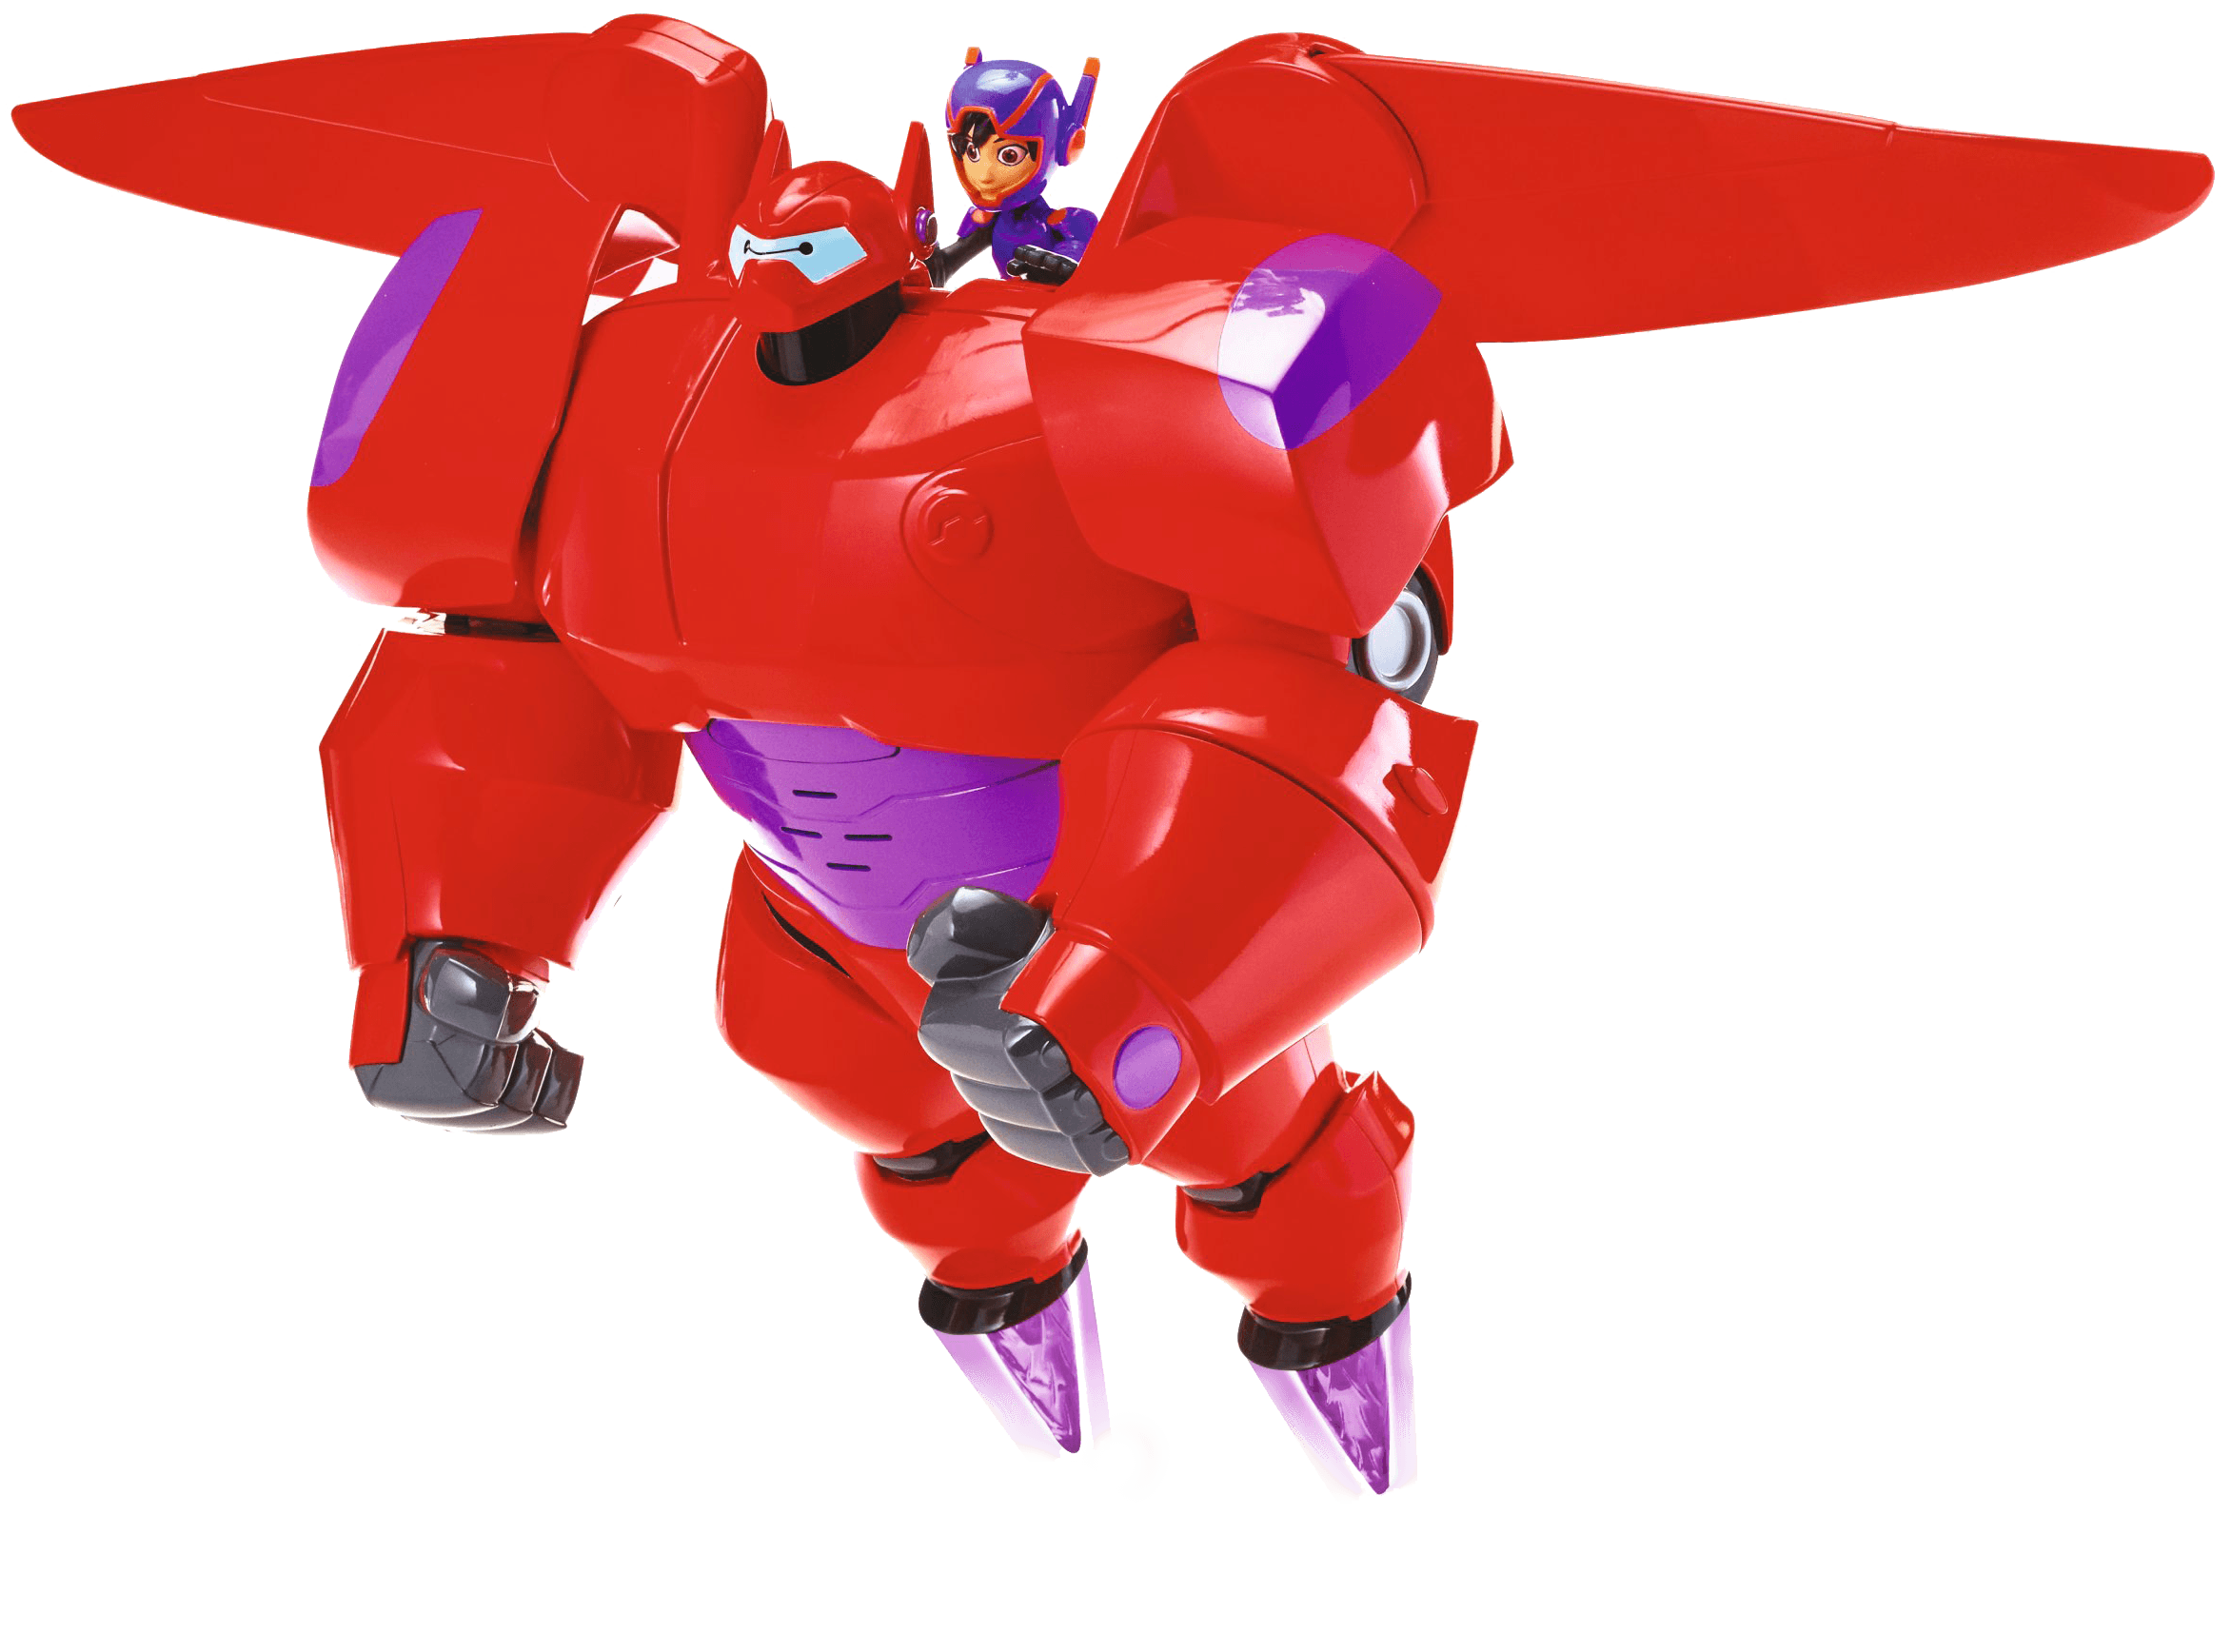 Big Hero 6: The Series.